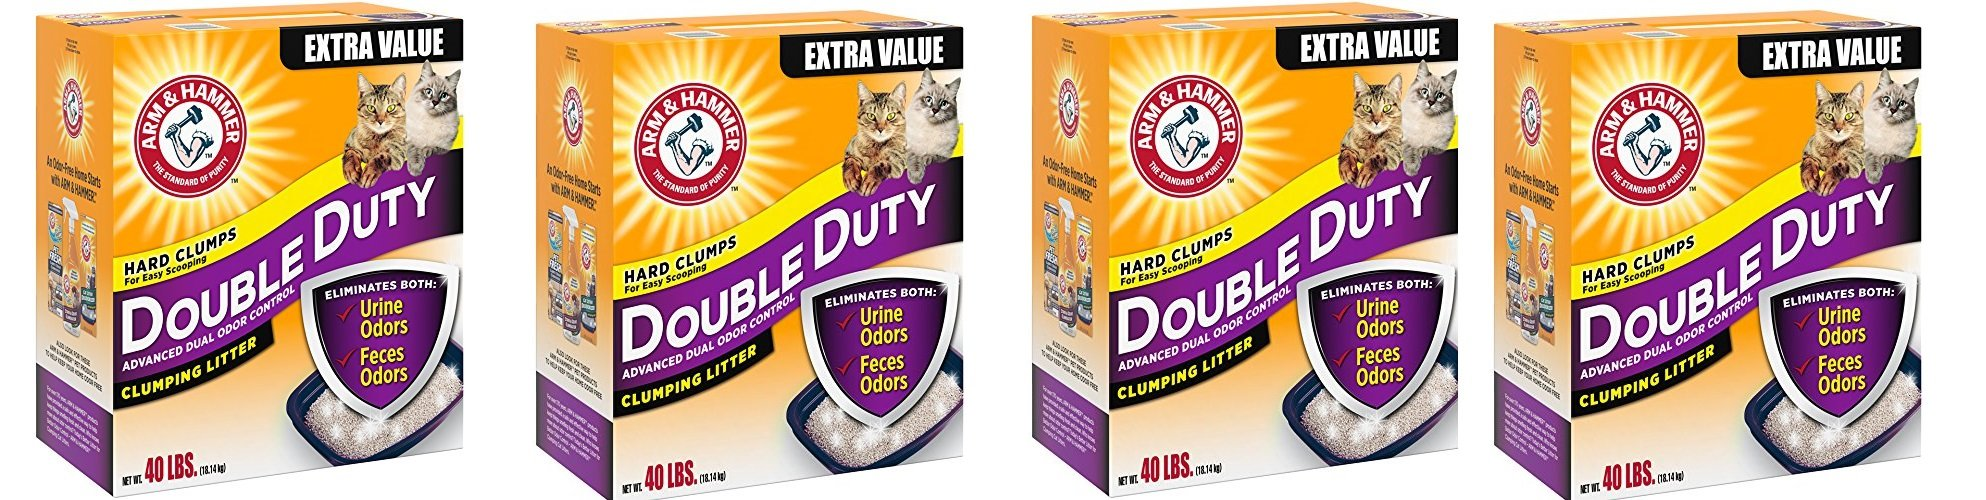 Arm & Hammer jMweXy Double Duty Clumping Litter, 40 Pounds (Pack of 4)